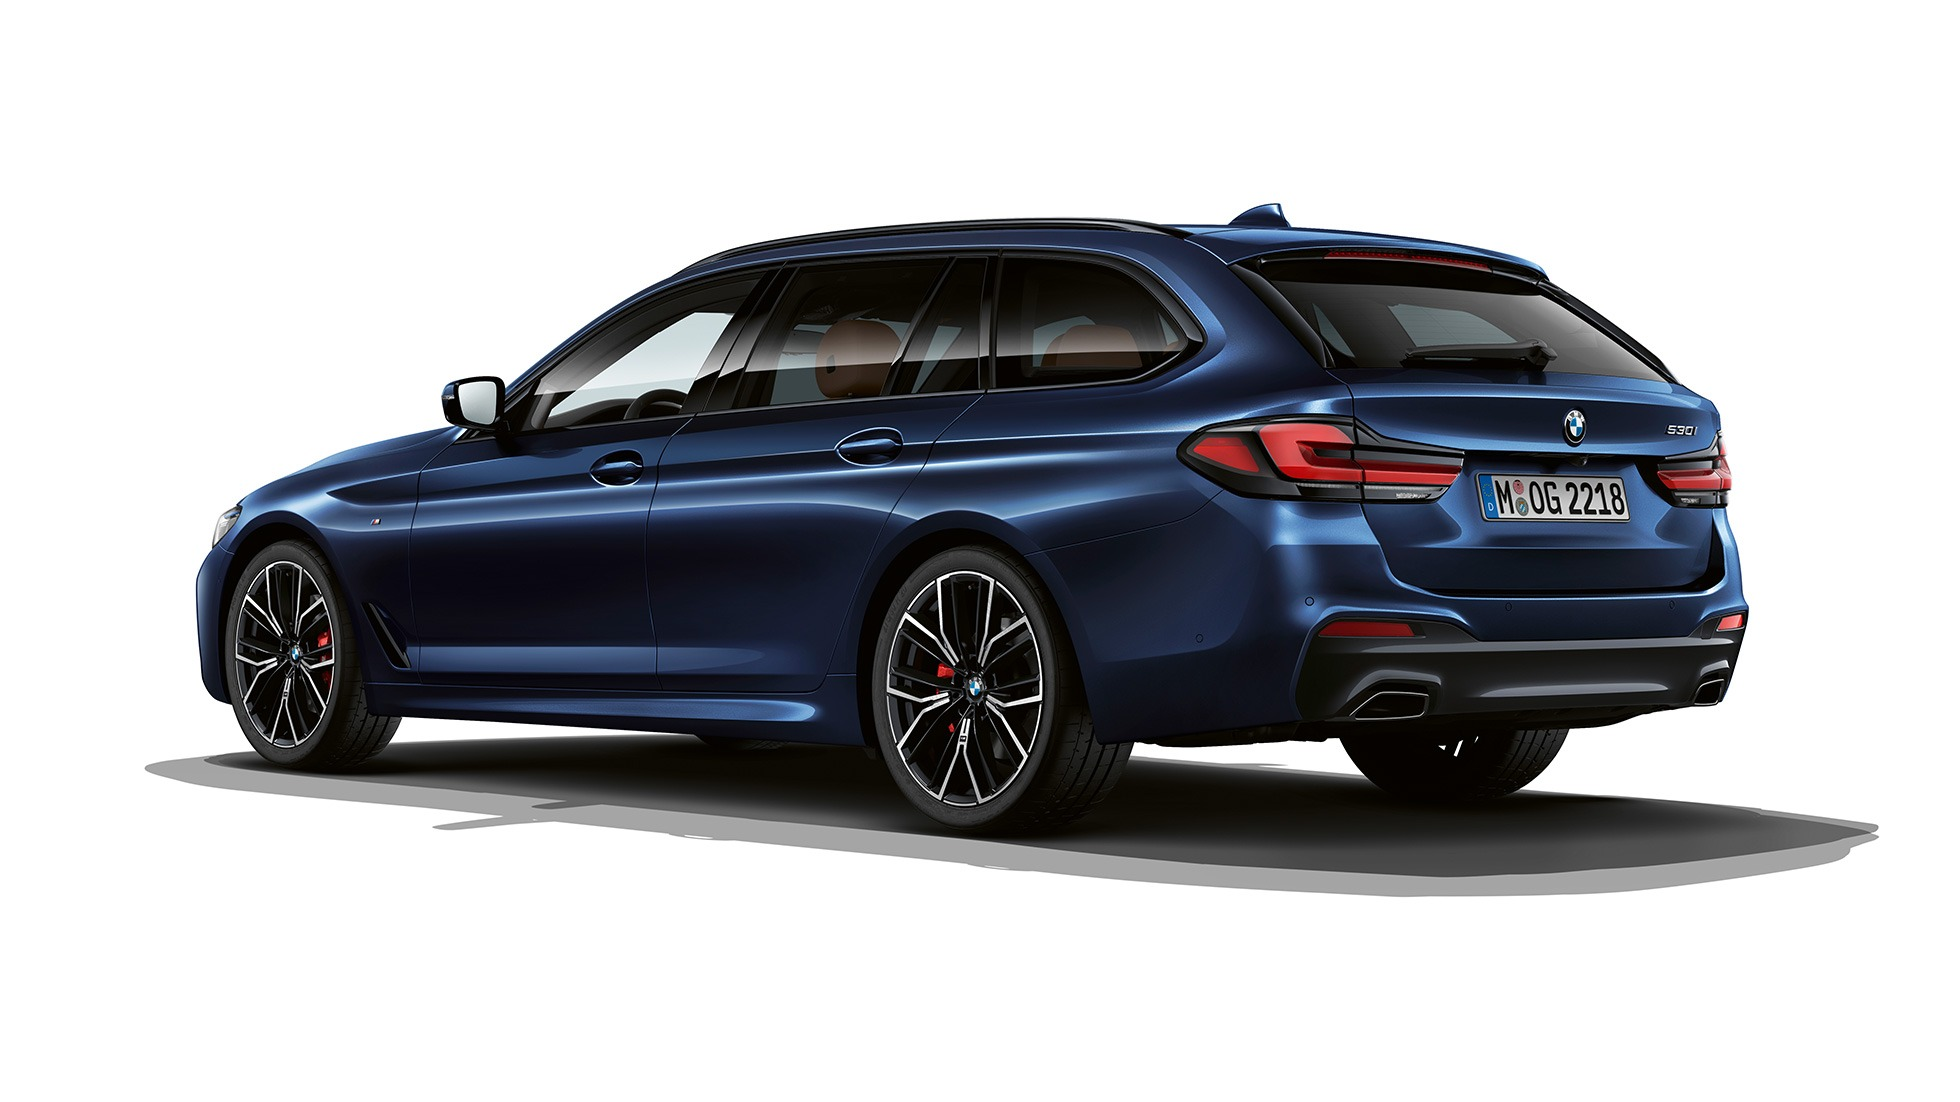 bmw-5-series-touring-models-and-equipment-lines-03-02